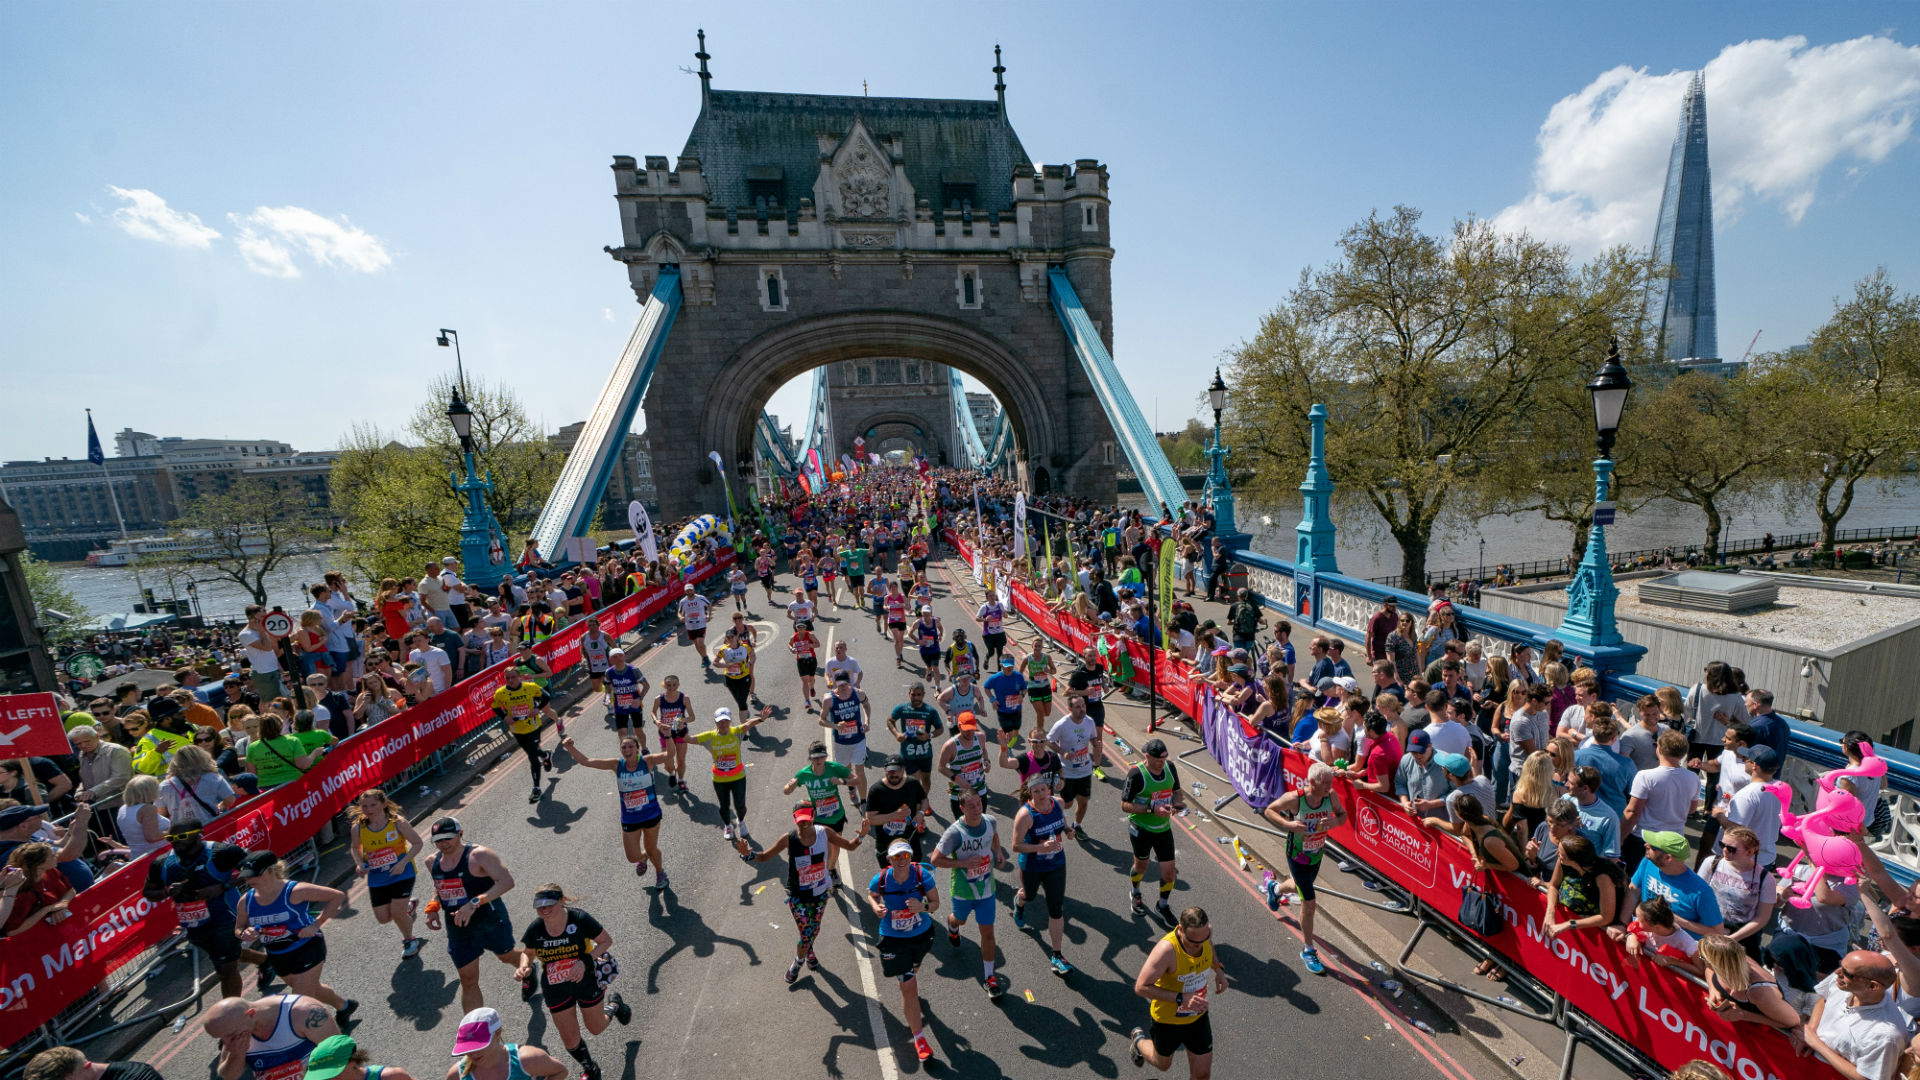 Crowds running over Tower Bridge during the Virgin Money London Marathon